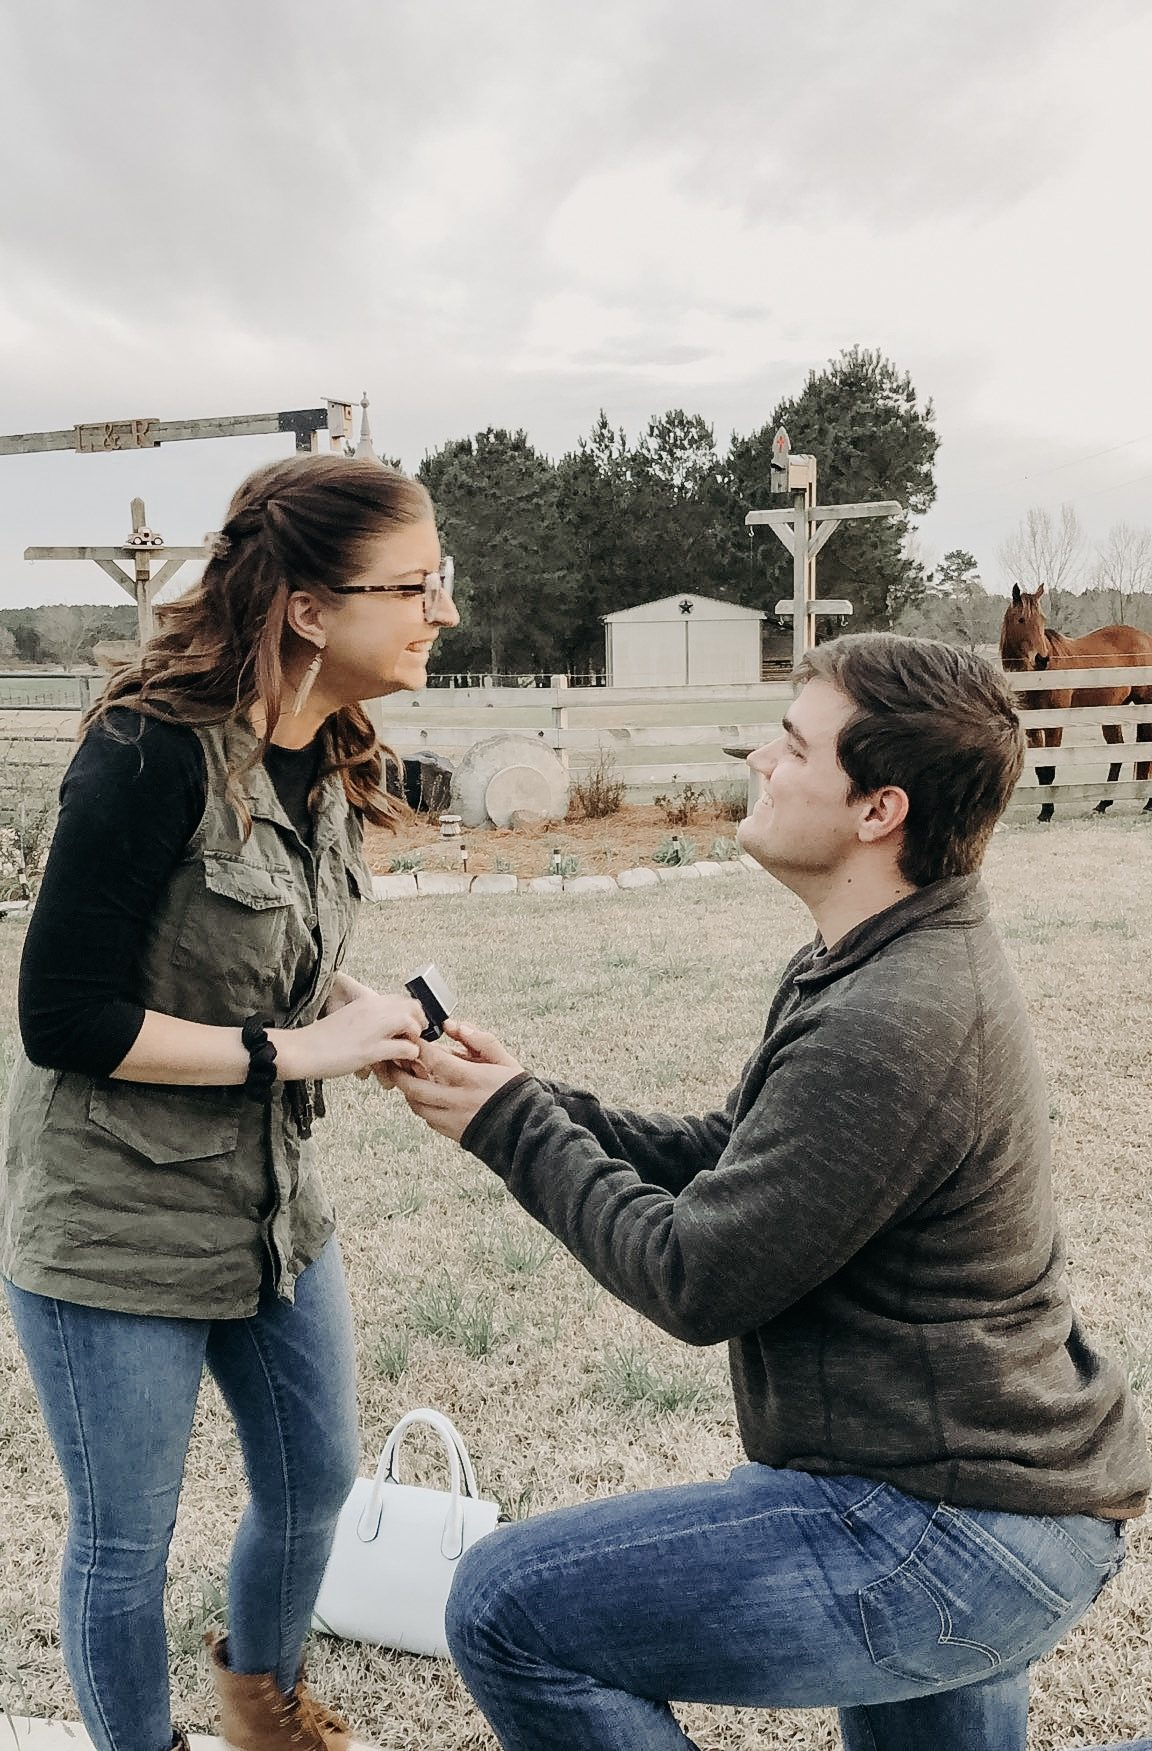 Wedding Proposal Ideas in On his grandparents ranch